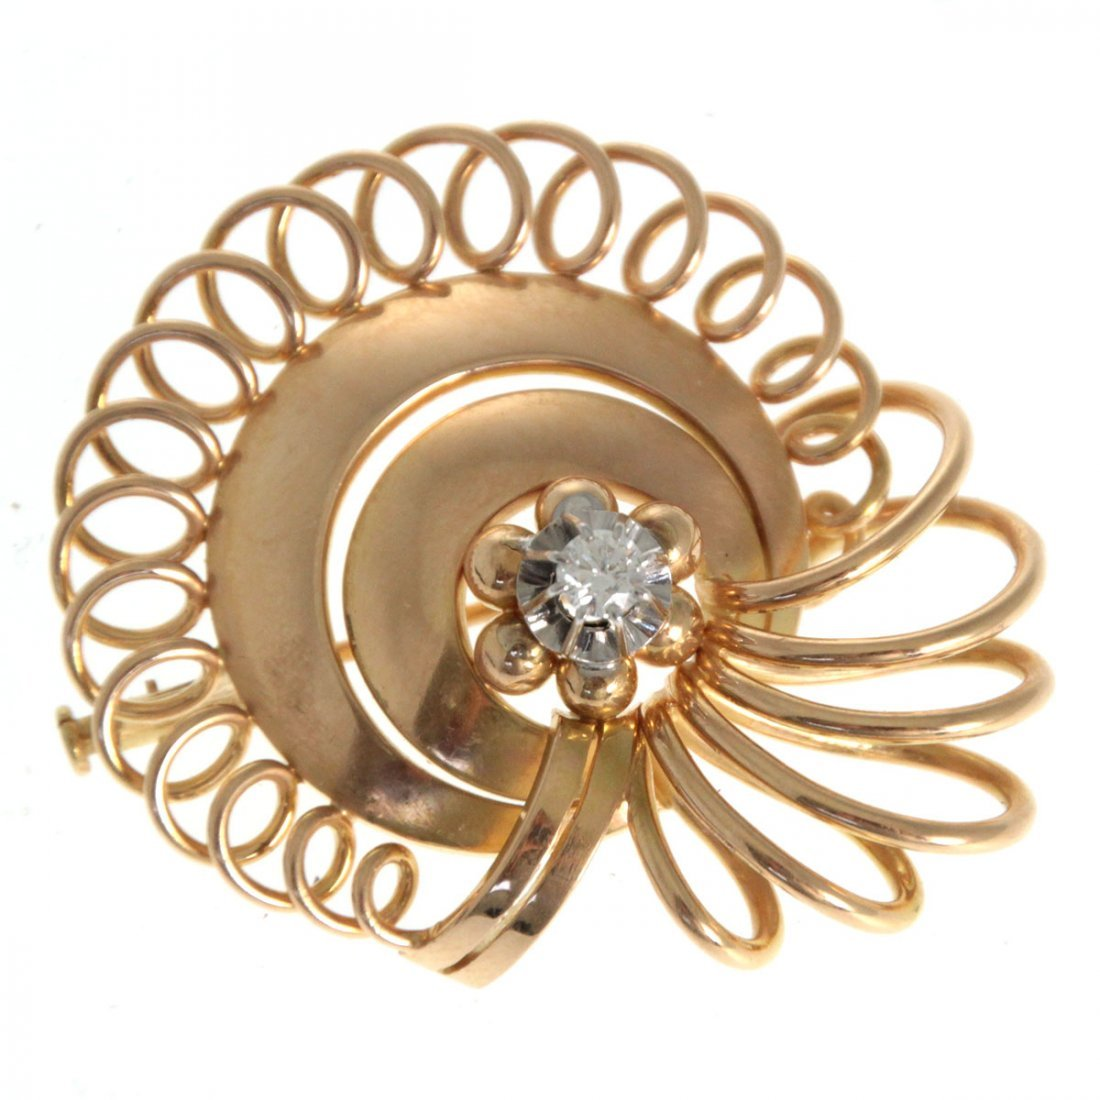 French 18k Yellow Gold and Diamond Brooch.